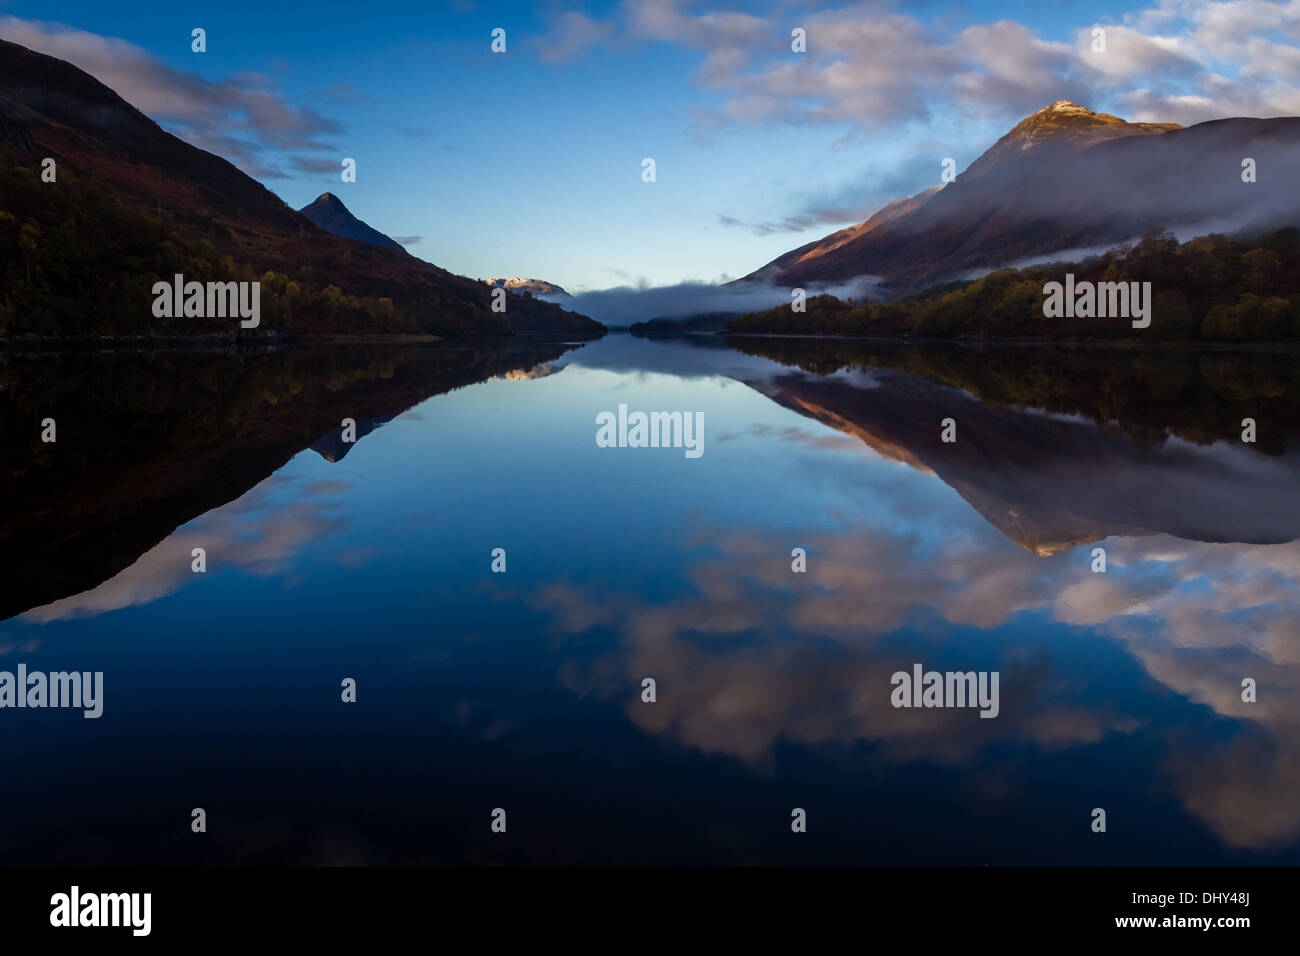 Dramatic early morning reflection and mist on Loch Leven, Scotland, UK - Stock Image